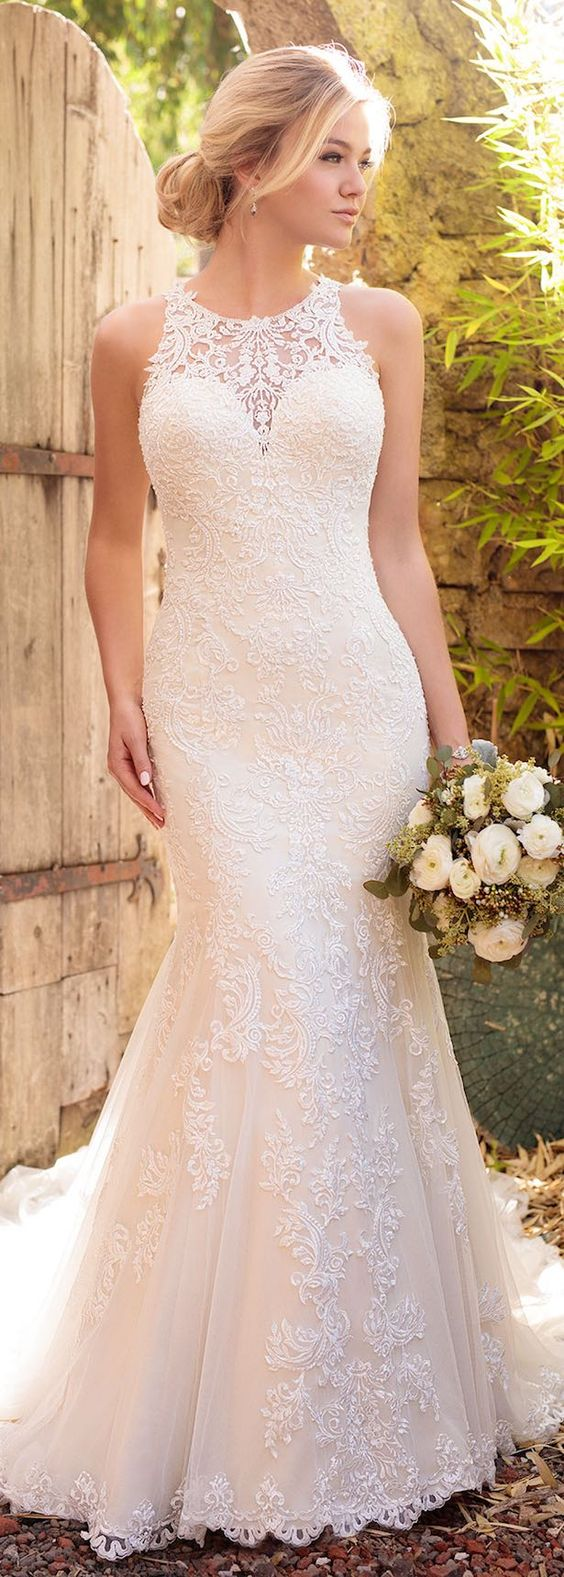 Essense of Australia Fall 2016 Wedding Dress: